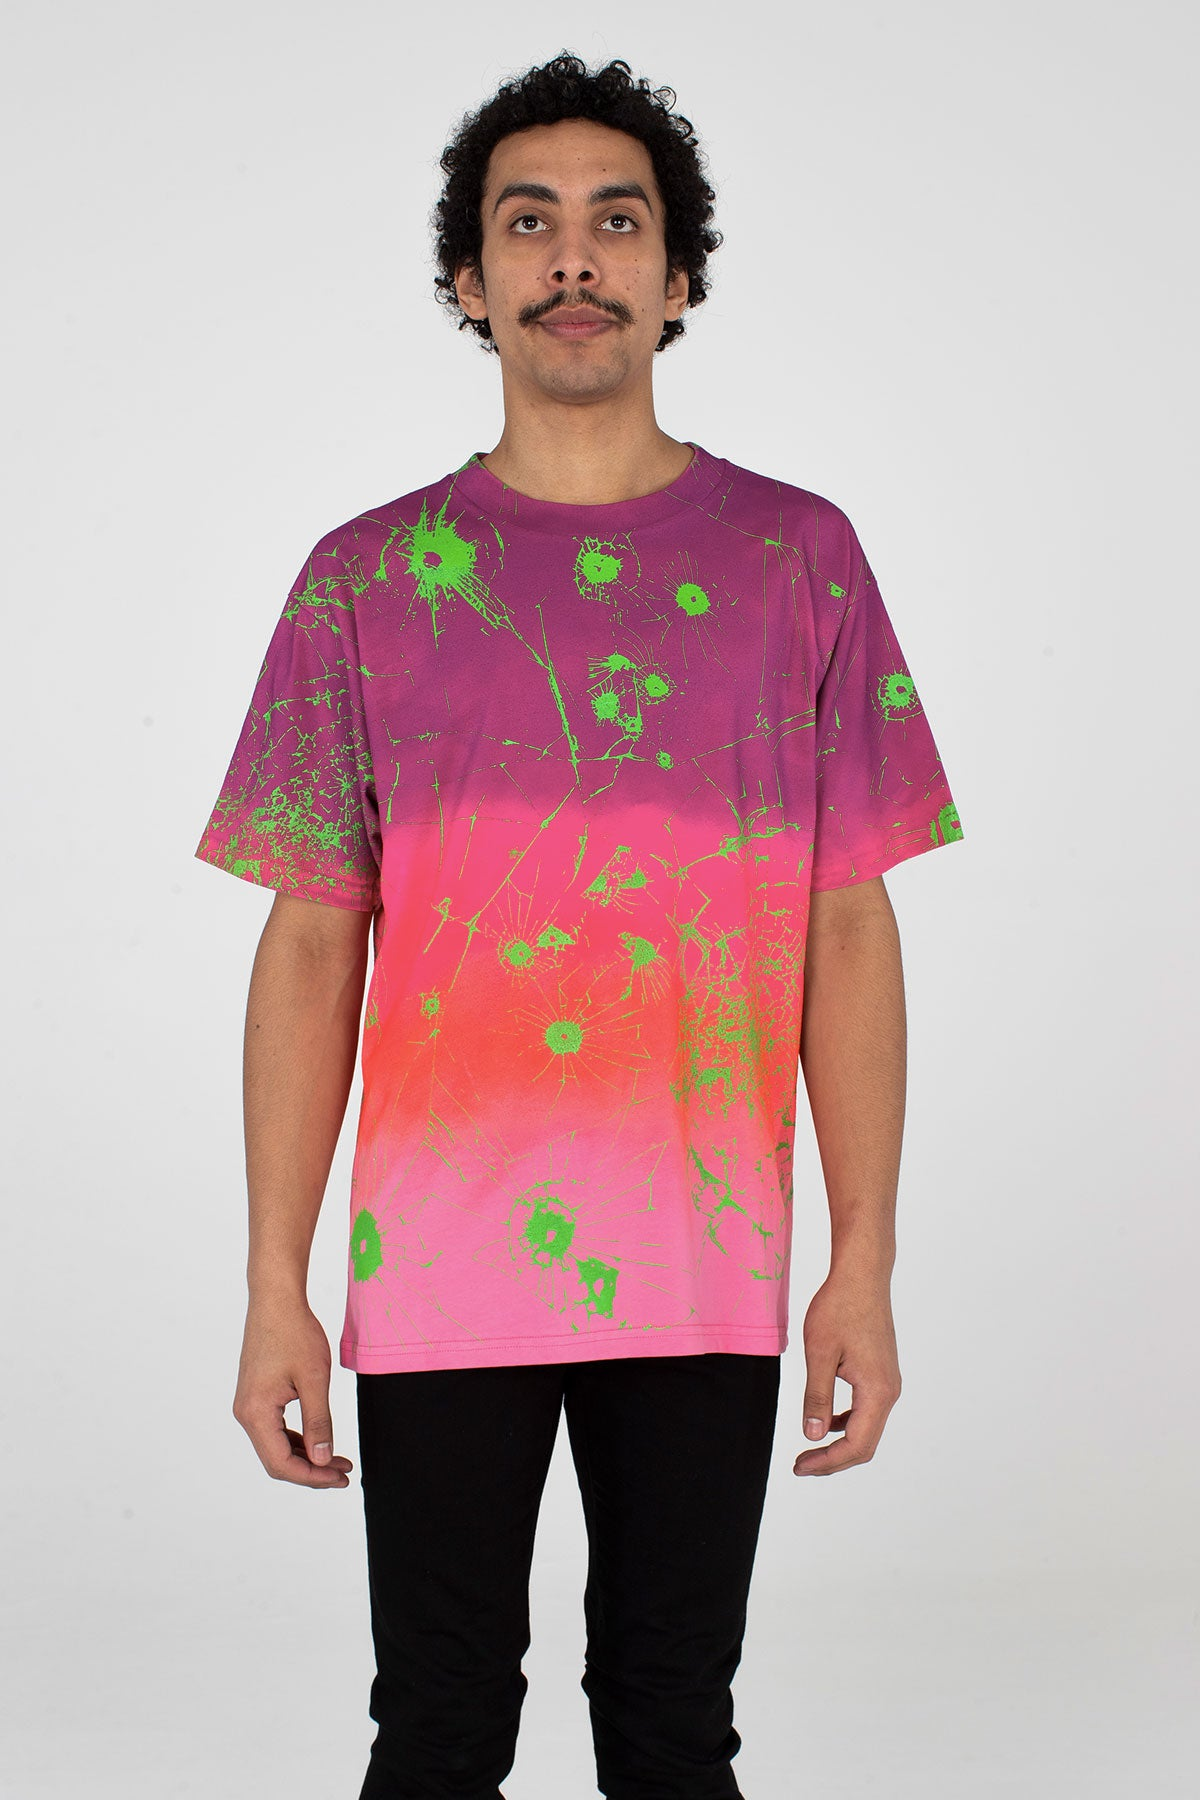 Festival T Shirt Multi Ombre Purple/Pink/ Ombre/ Lime Green - TOP - MJB